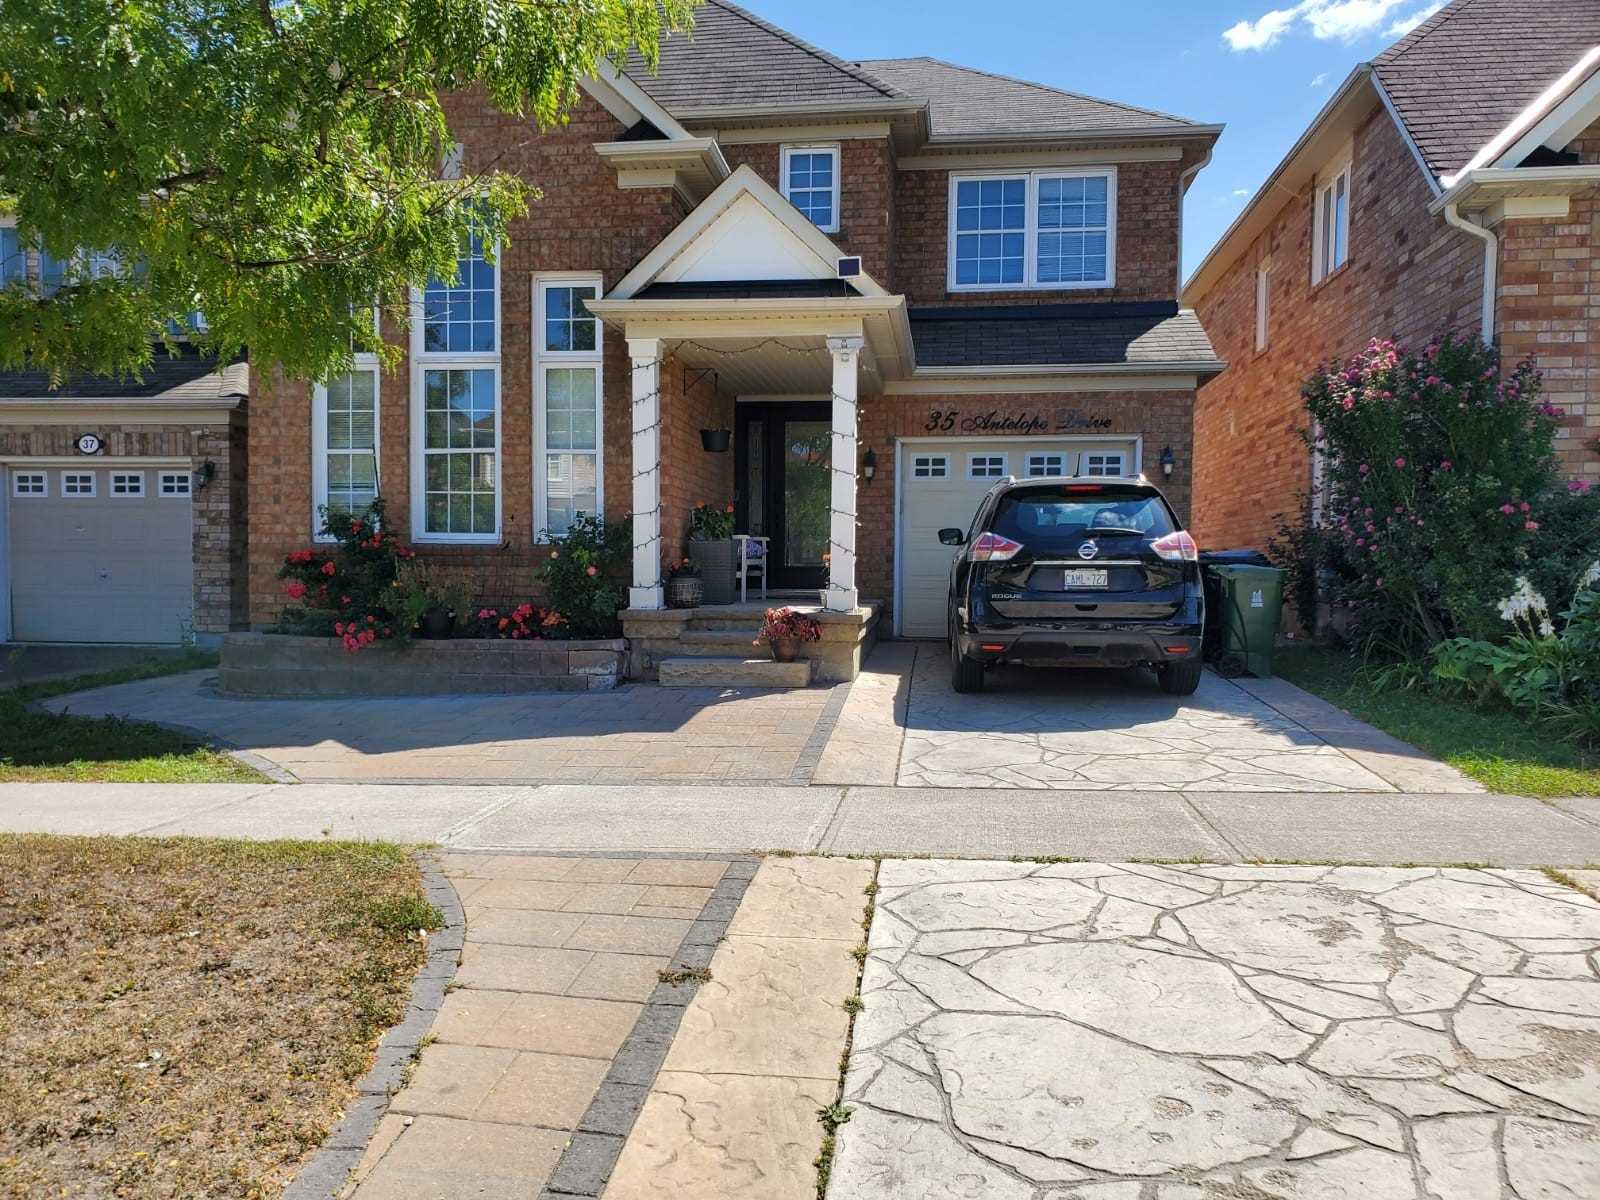 Detached house For Lease In Toronto - 35 Antelope Dr, Toronto, Ontario, Canada M1B6K3 , 2 Bedrooms Bedrooms, ,2 BathroomsBathrooms,Detached,For Lease,Bsmt,Antelope